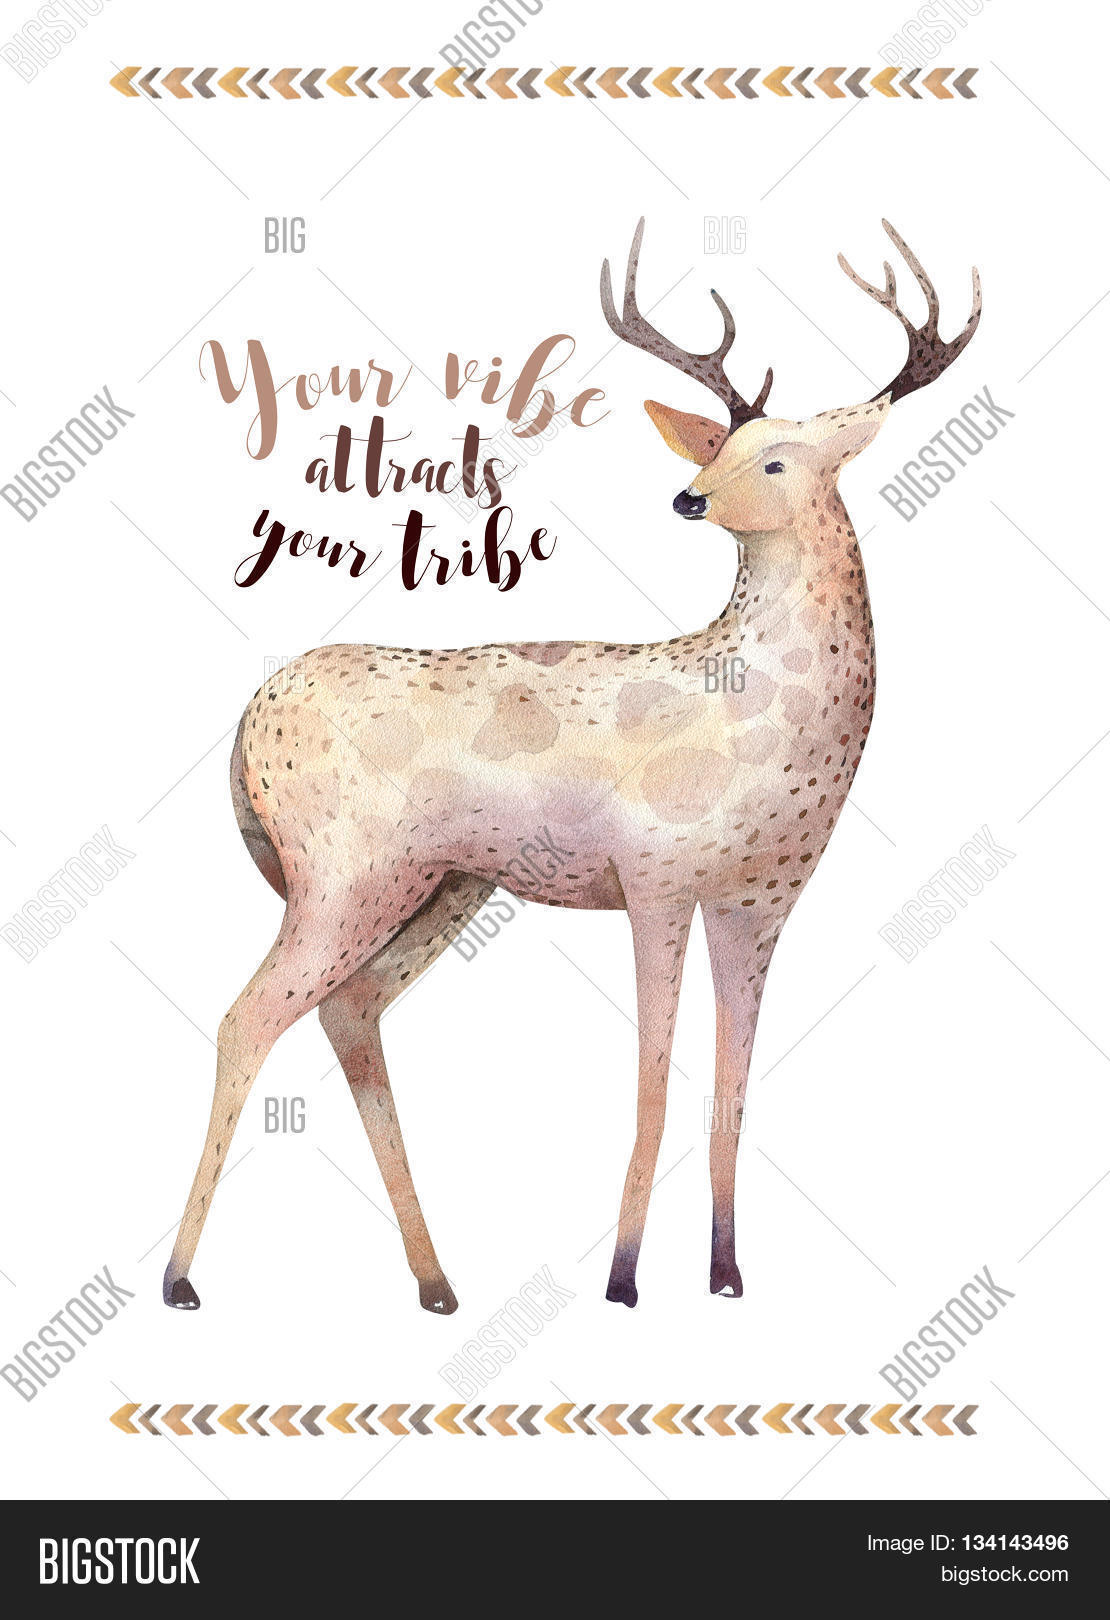 hindu single men in white deer White deerskin was the best material to use in a wedding dress, and the best white deer skin came from the albino deer blue jay went to his beloved, whose name was bright moon i will return with your bride price in one moon, and we will be married.